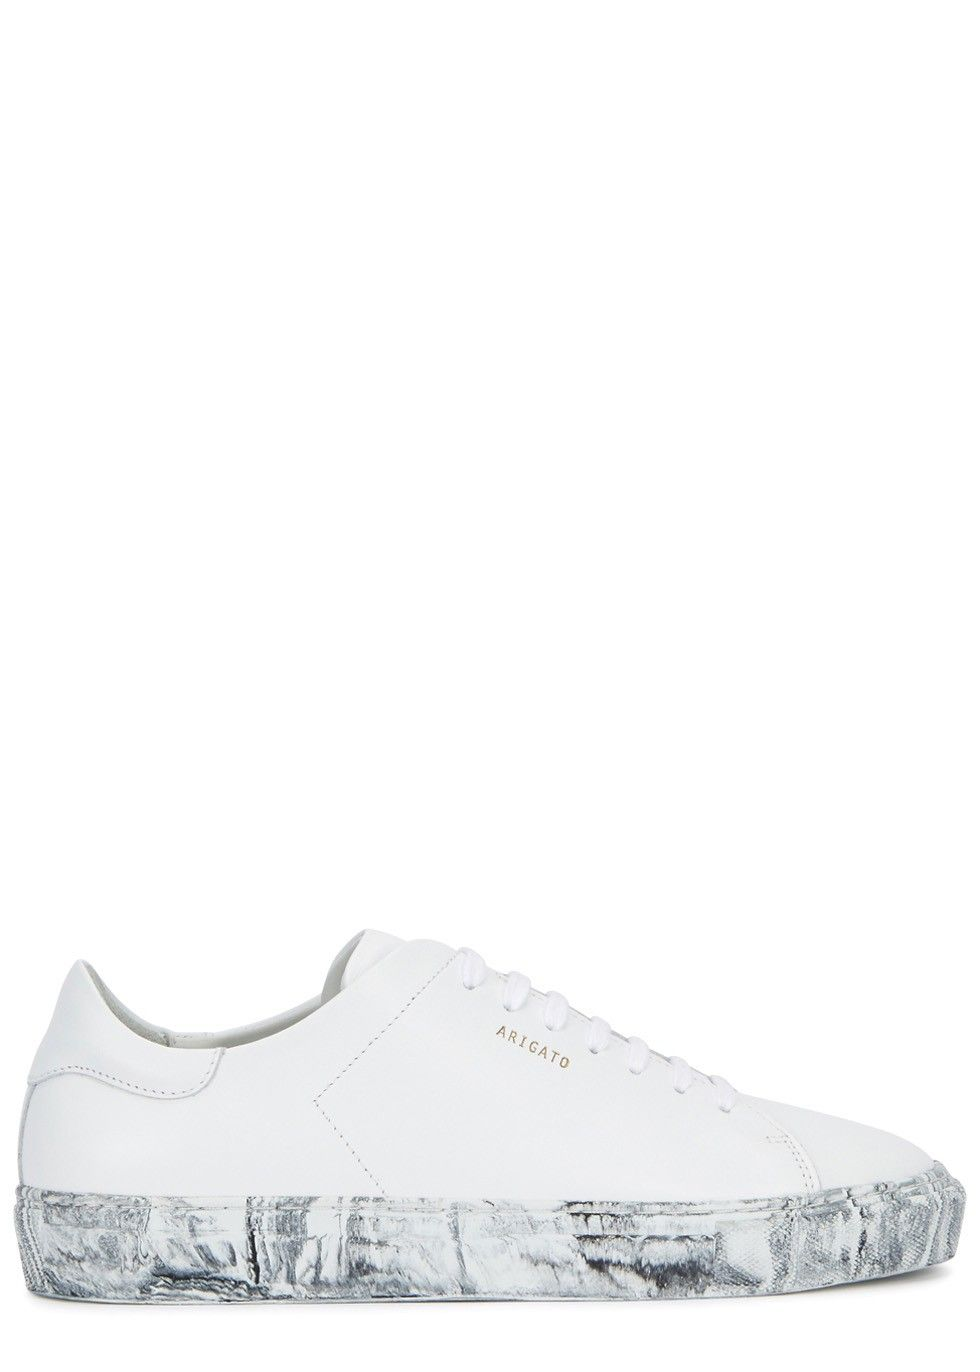 marble louis vuitton trainers